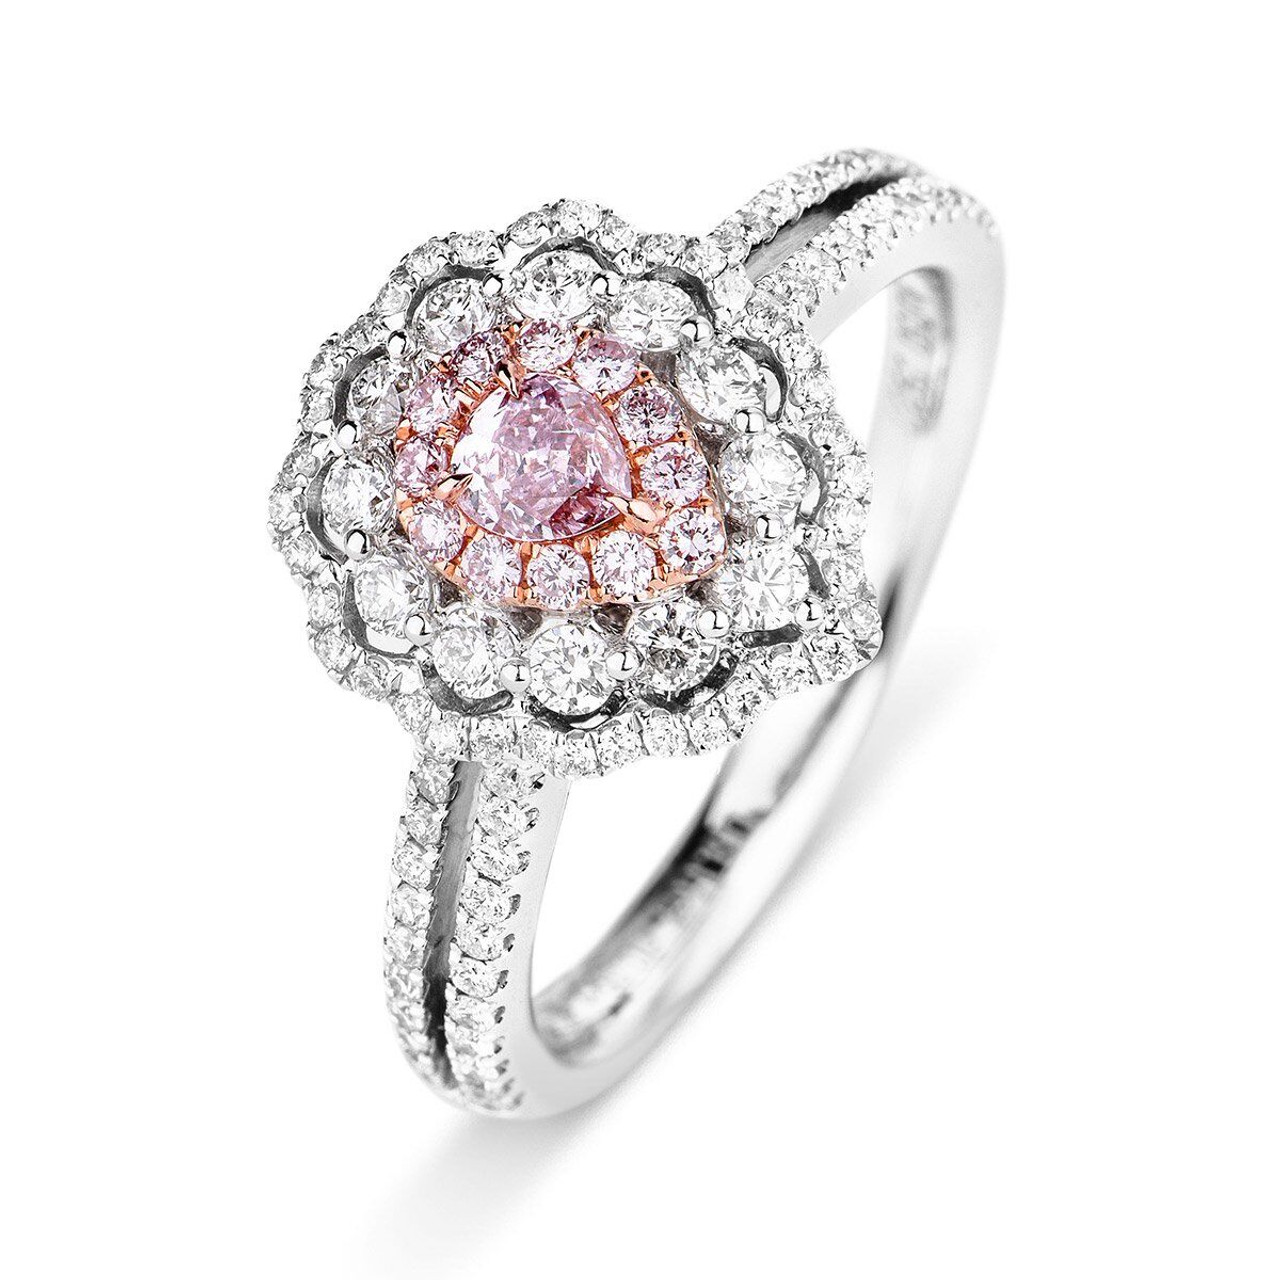 bands rings carat wedding rose bridal trio and with diamond gold black ring in set engagement sale morganite